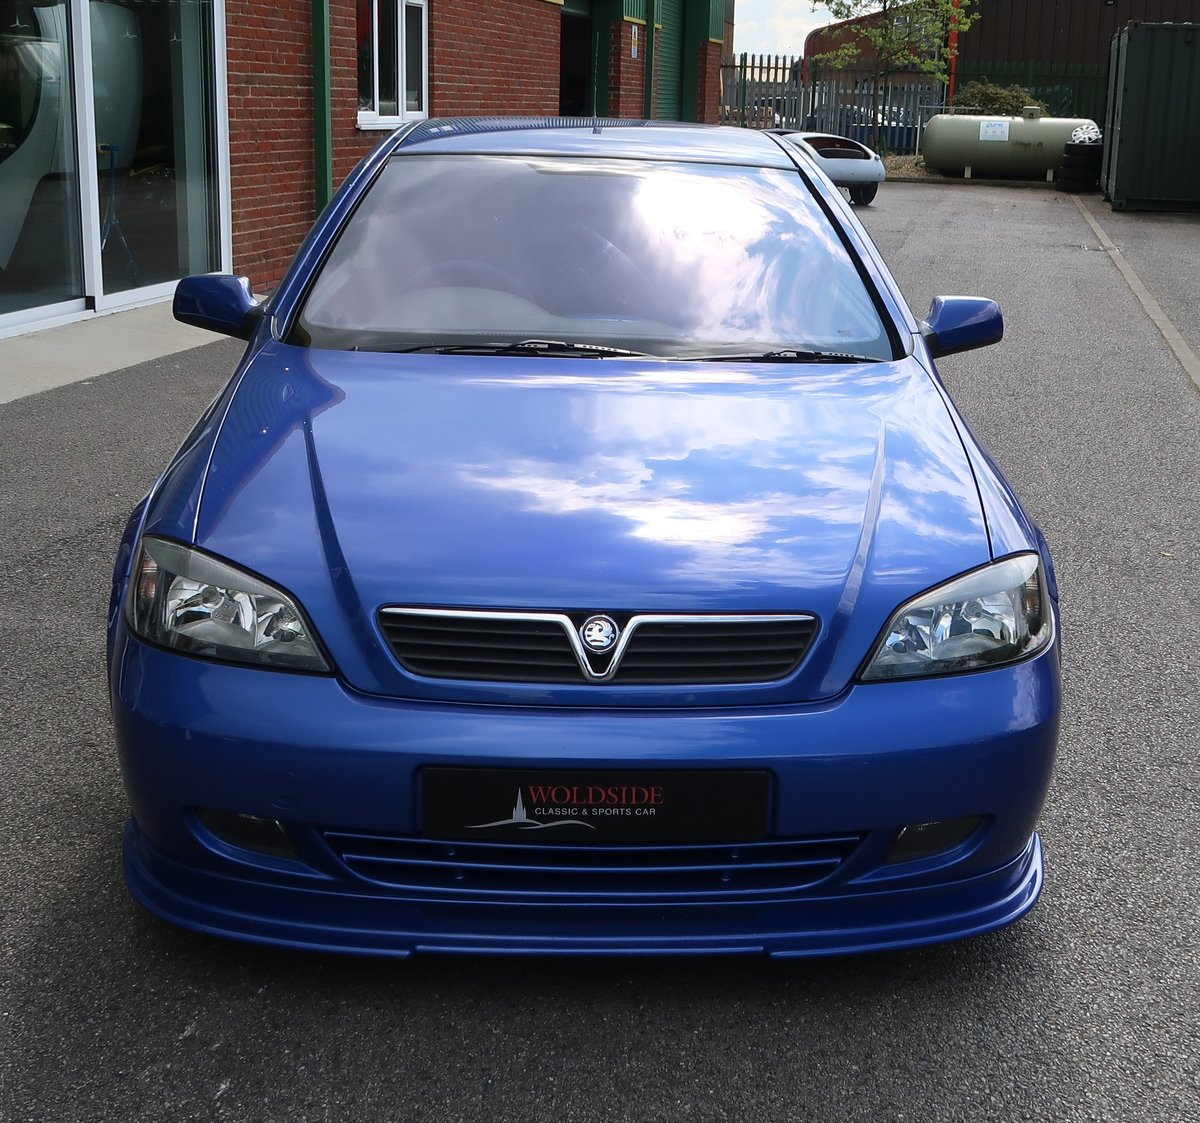 2002 Vauxhall Astra Triple 888 2.0i 16v Turbo Coupe SOLD (picture 2 of 6)